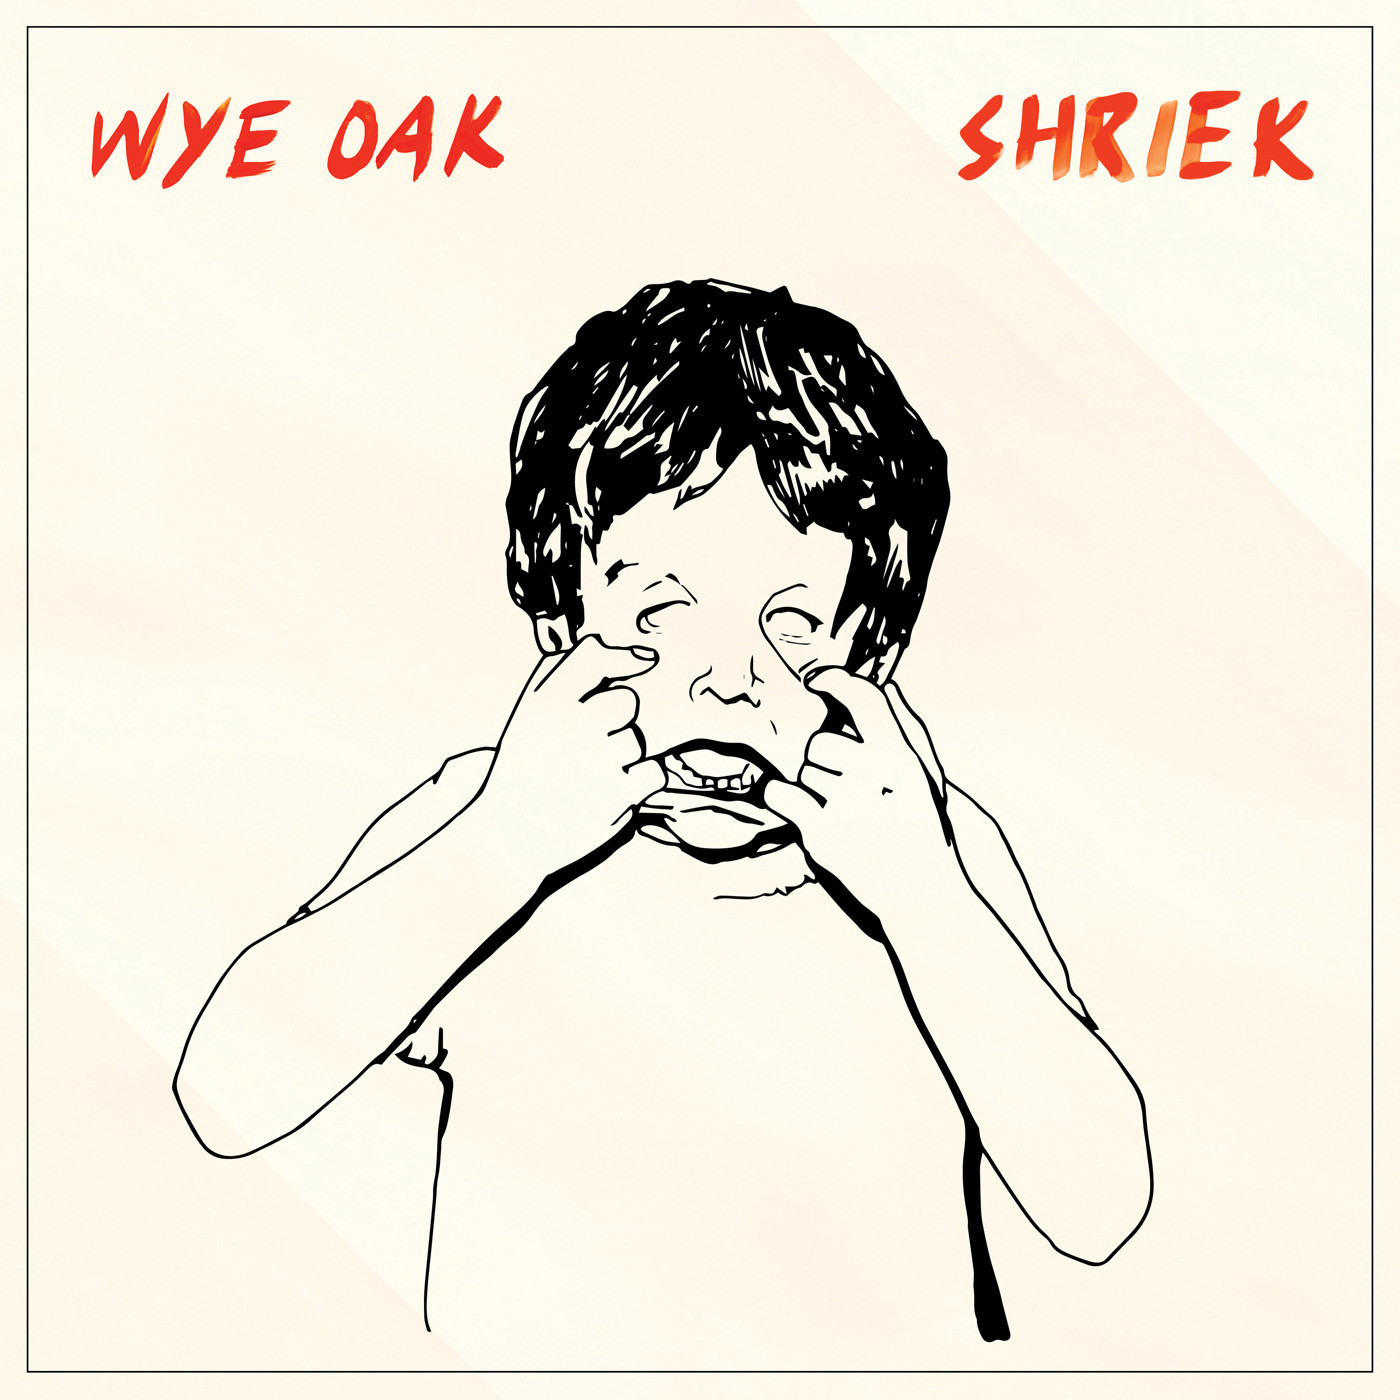 Baltimore album reviews [Pictures] - Wye Oak,